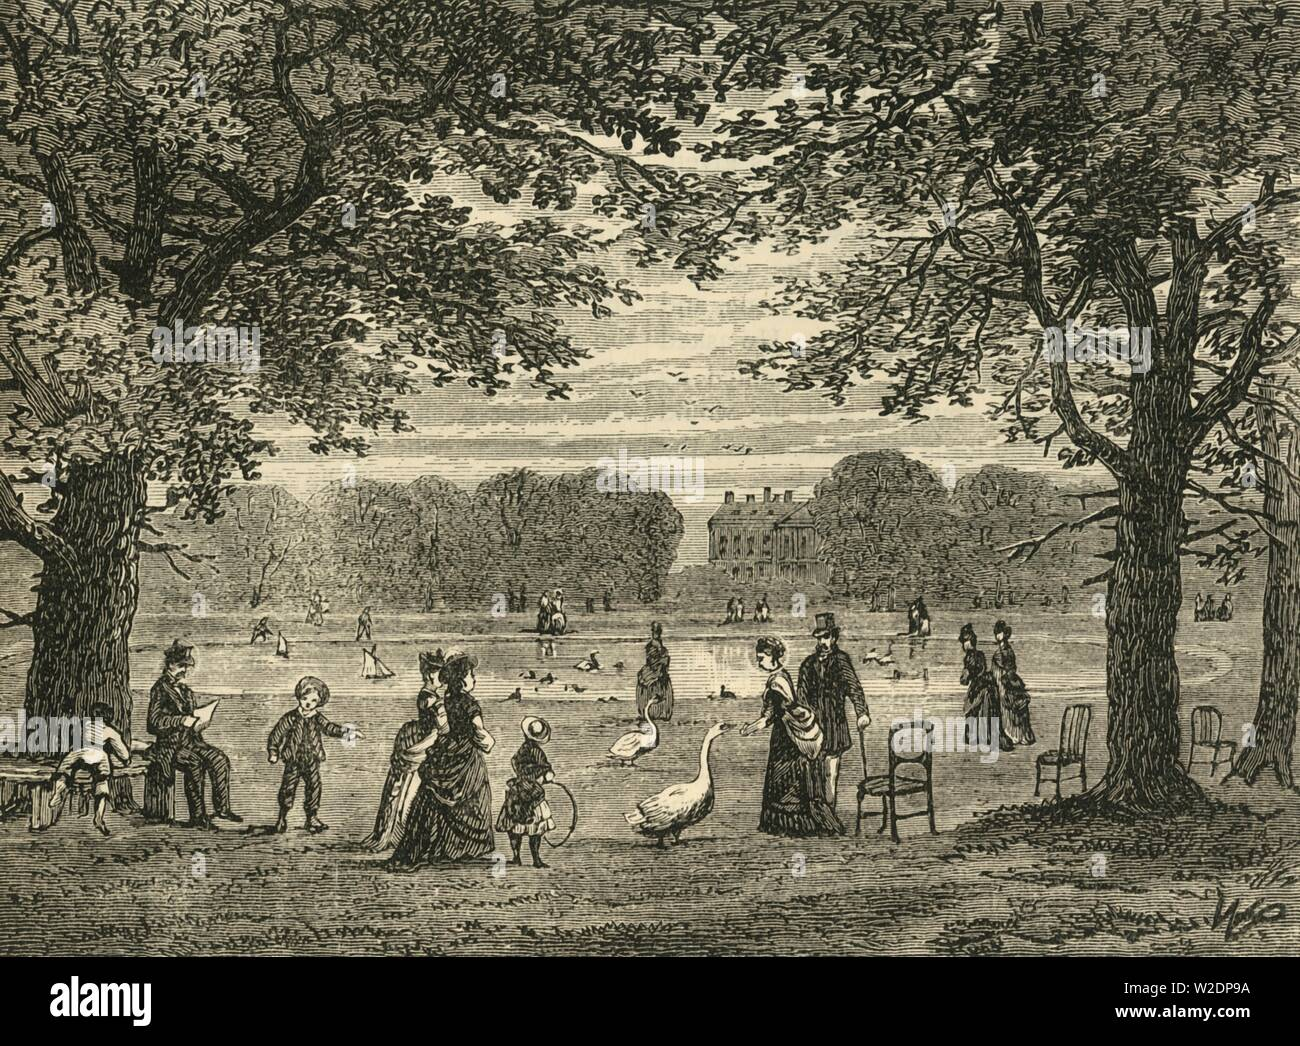 """'The Round Pond, Kensington Gardens', c1876. The Round Pond is an ornamental lake in Kensington Gardens, created in 1730 by George II.  From """"Old and New London: A Narrative of Its History, Its People, and Its Places. The Western and Northern Studies"""", by Edward Walford. [Cassell, Petter, Galpin & Co., London, Paris & New York] - Stock Image"""